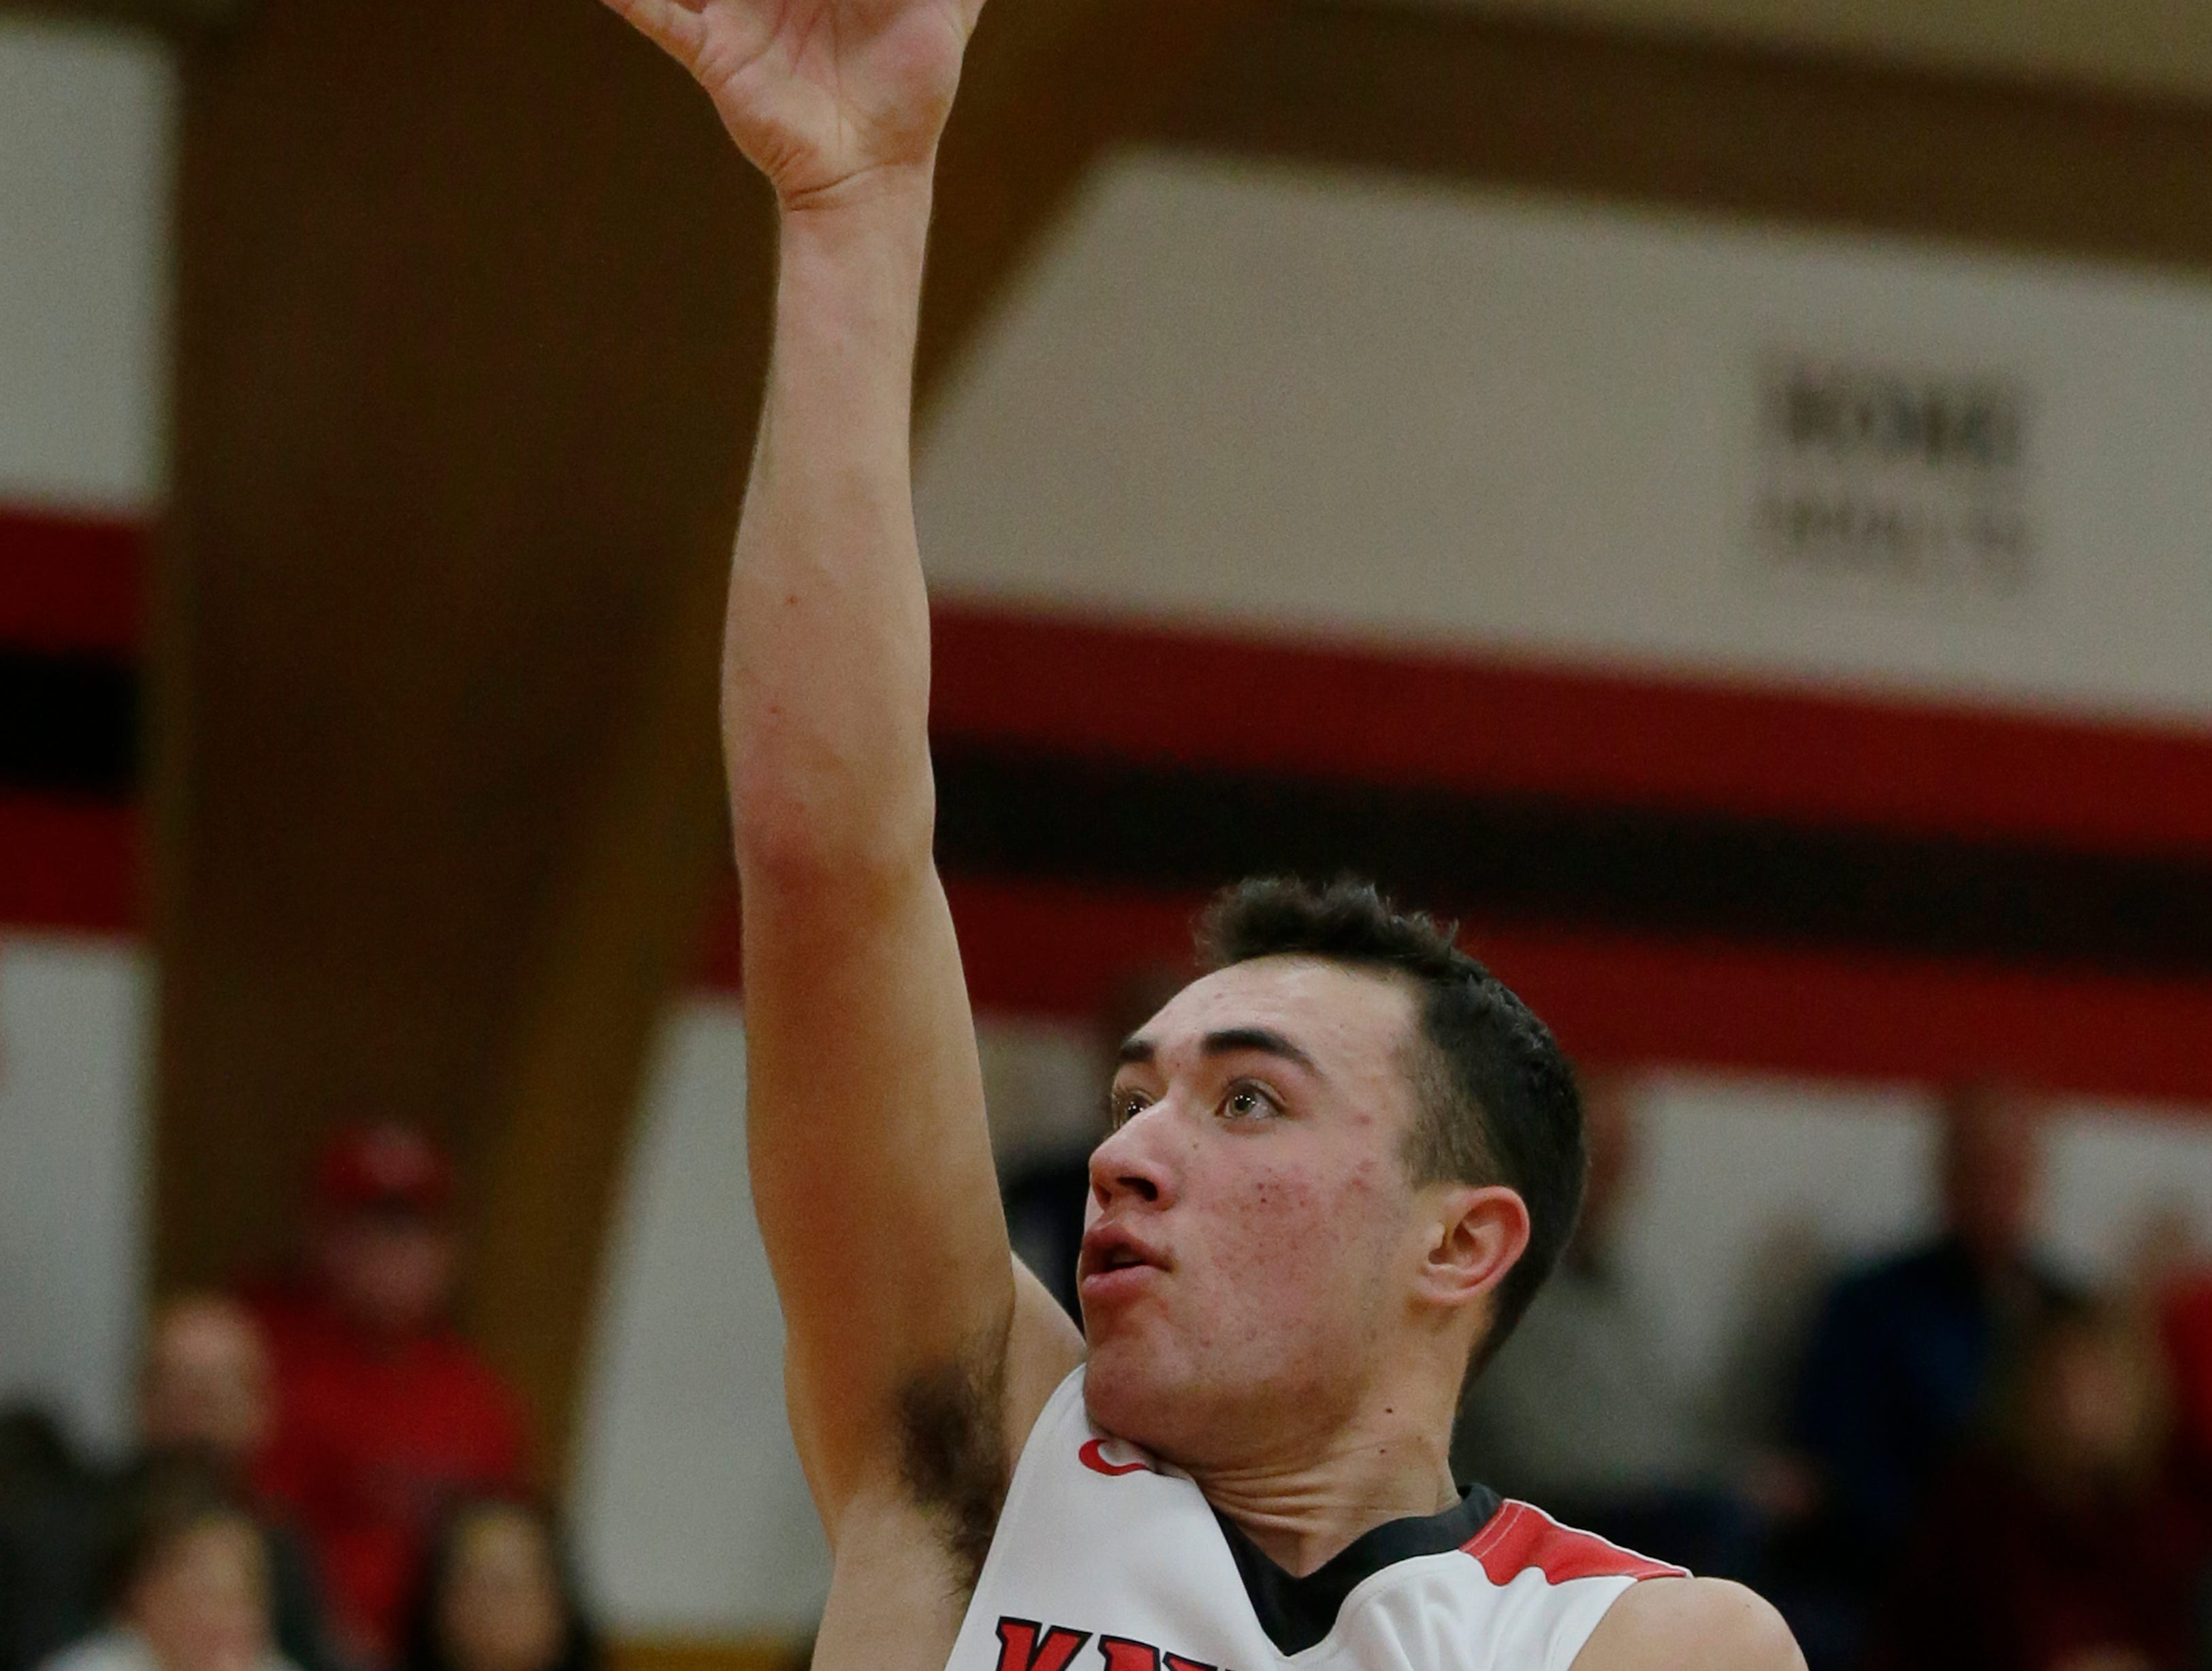 Lourdes Academy's Ben Huizenga drives to the inside for a shot. Lourdes Academy Knights played Oakfield Oaks in boys basketball Tuesday, Dec. 4, 2018, at Lourdes Castle in Oshkosh, Wis.